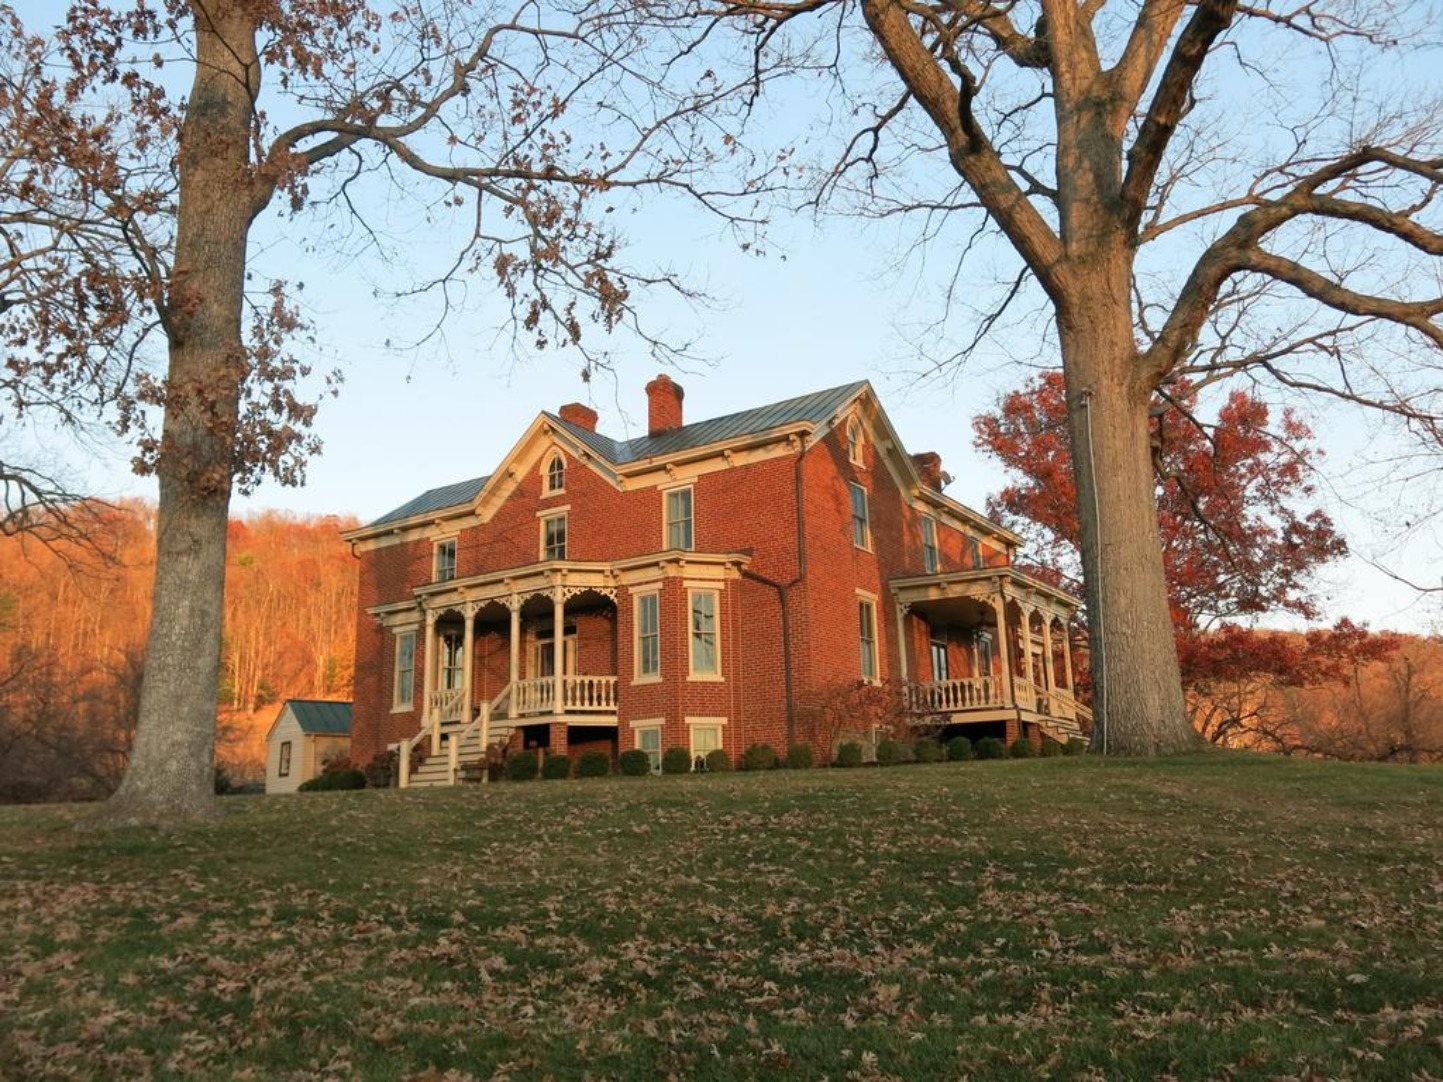 A large brick building with grass in front of a house at The Inn at Mount Vernon Farm.